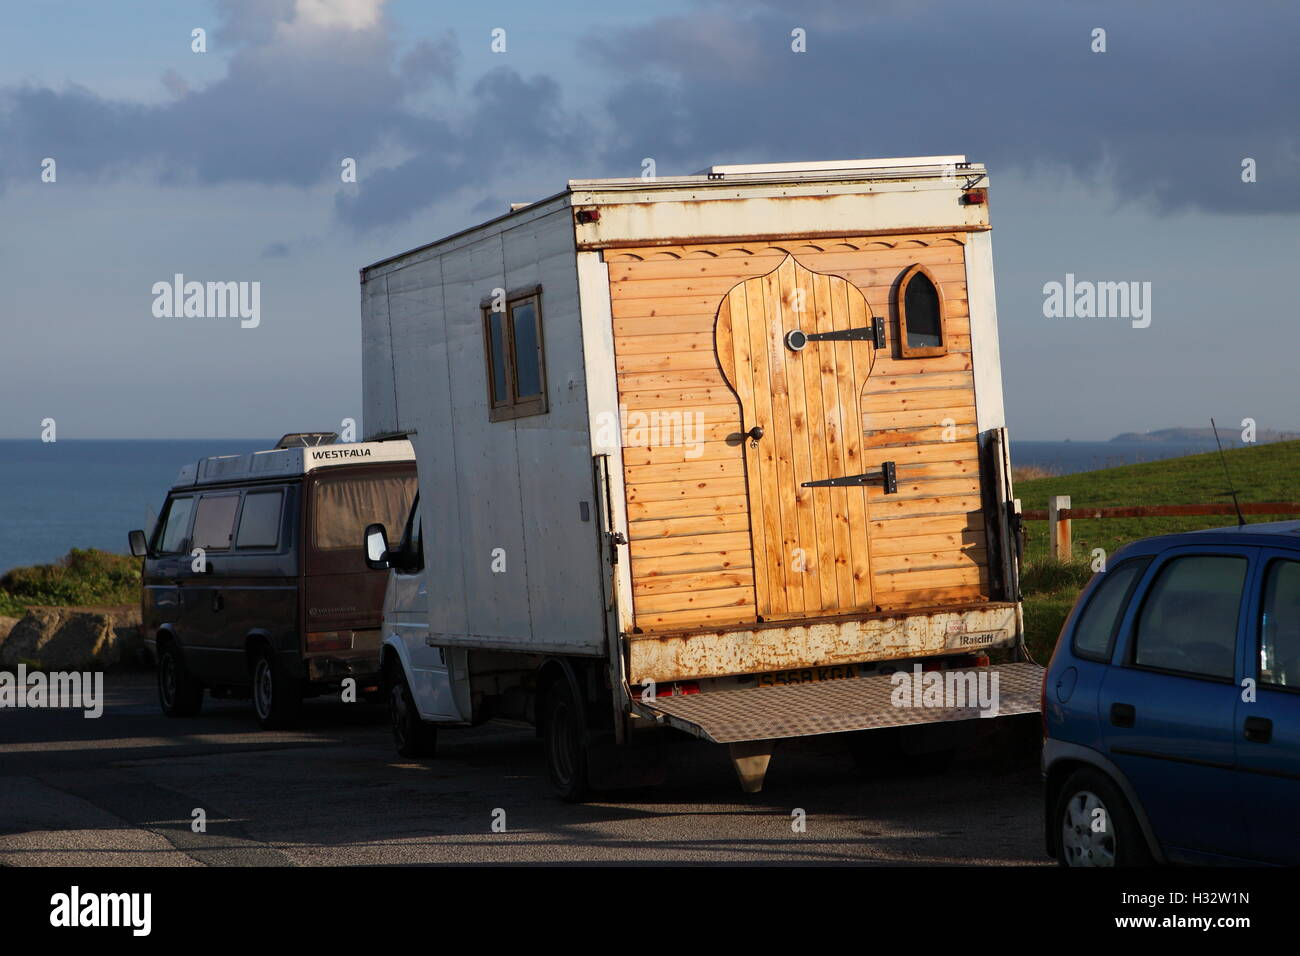 PENTIRE, NEWQUAY, CORNWALL, UK - OCTOBER 3, 2016: A gypsy caravan parked on Pentire in Newquay. - Stock Image